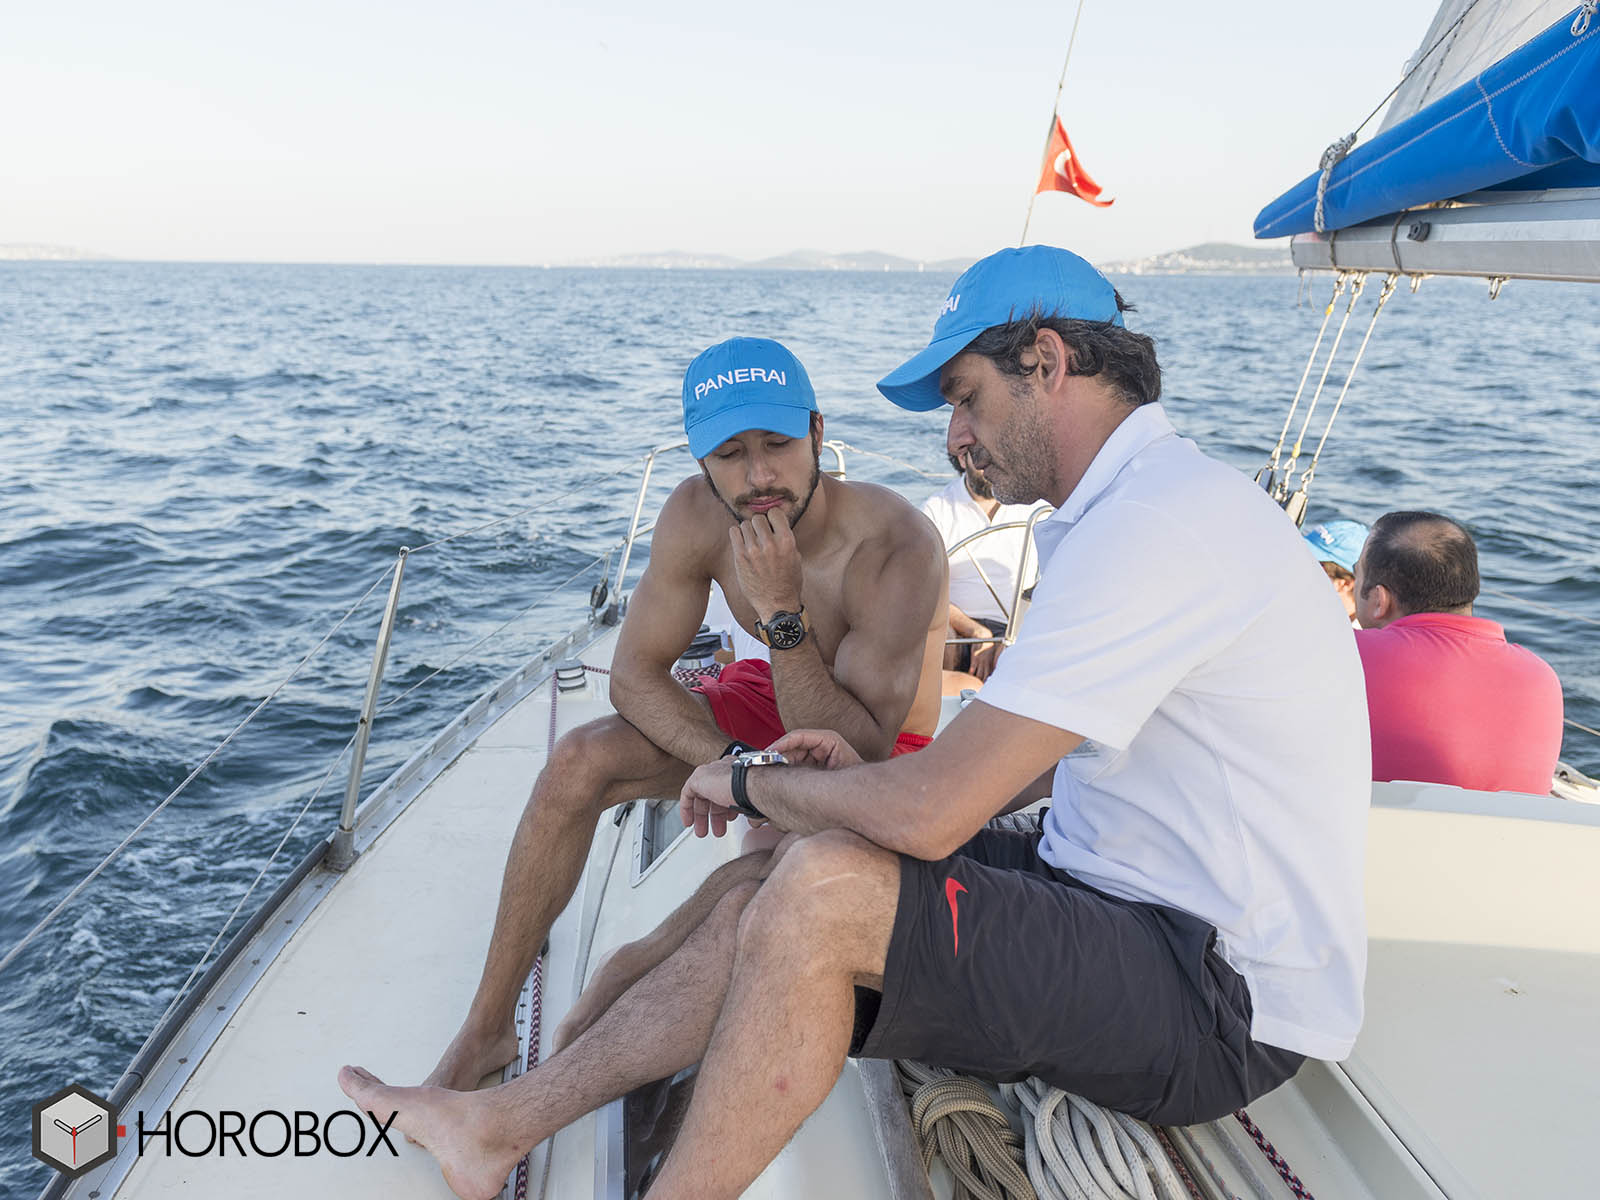 Horobox-inside-Sailing-6414.jpg